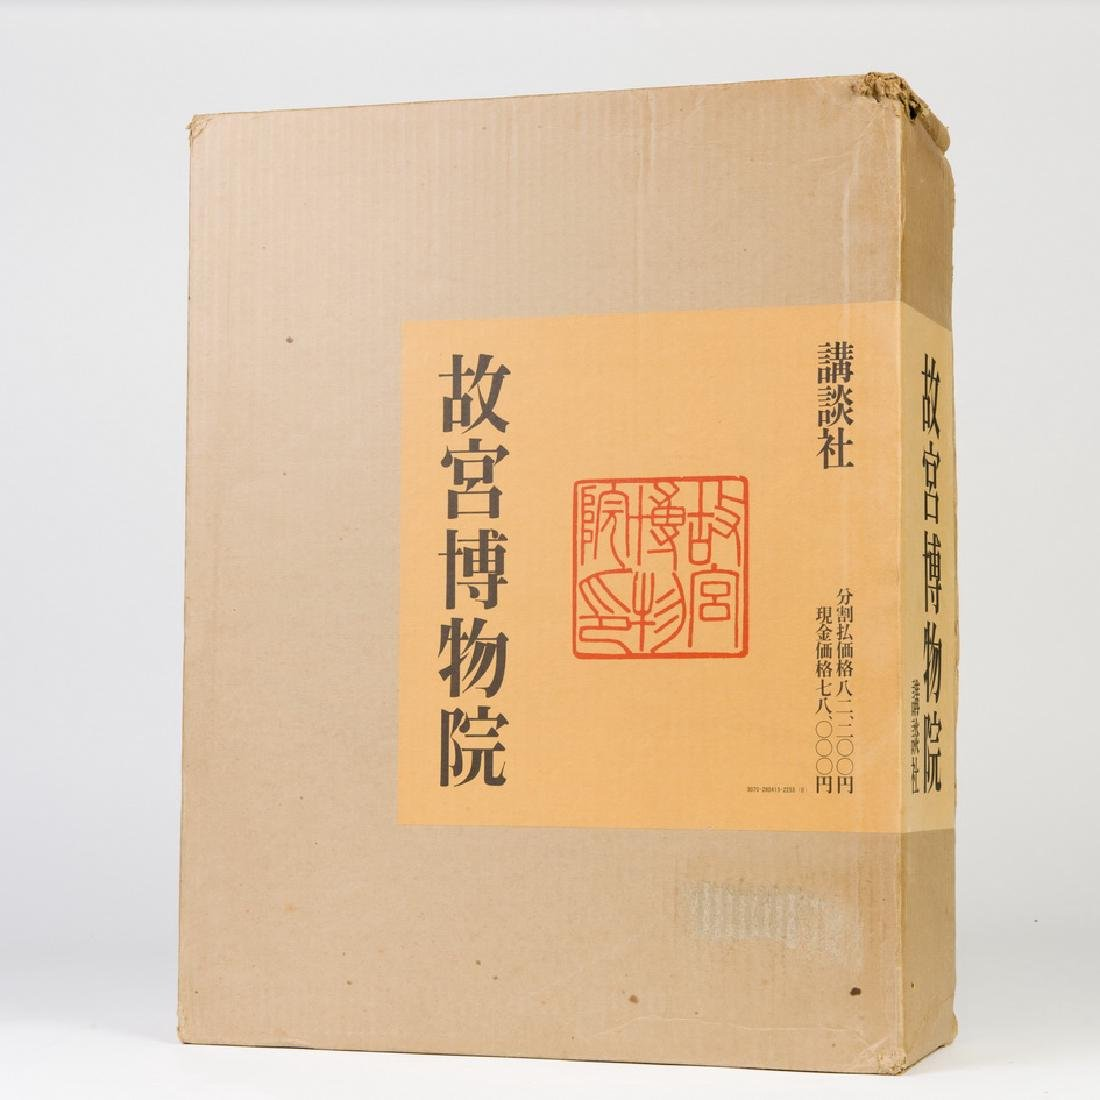 A book on the Palace Museum